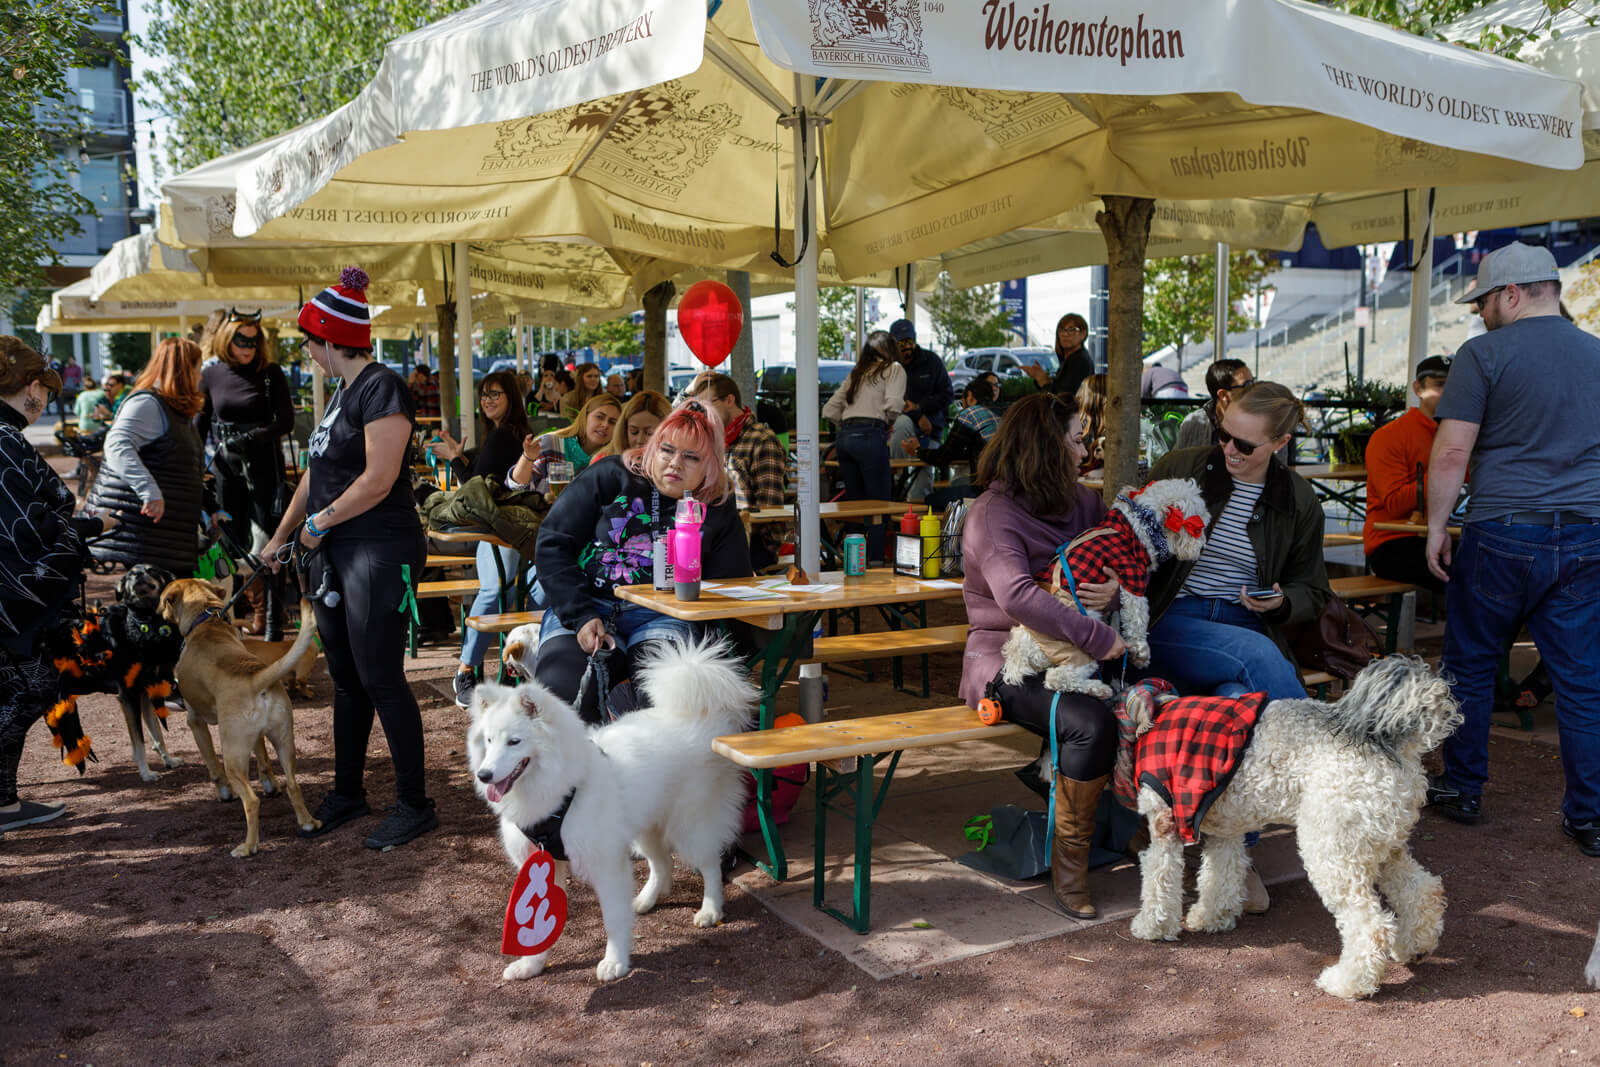 People and dogs at Halloween event